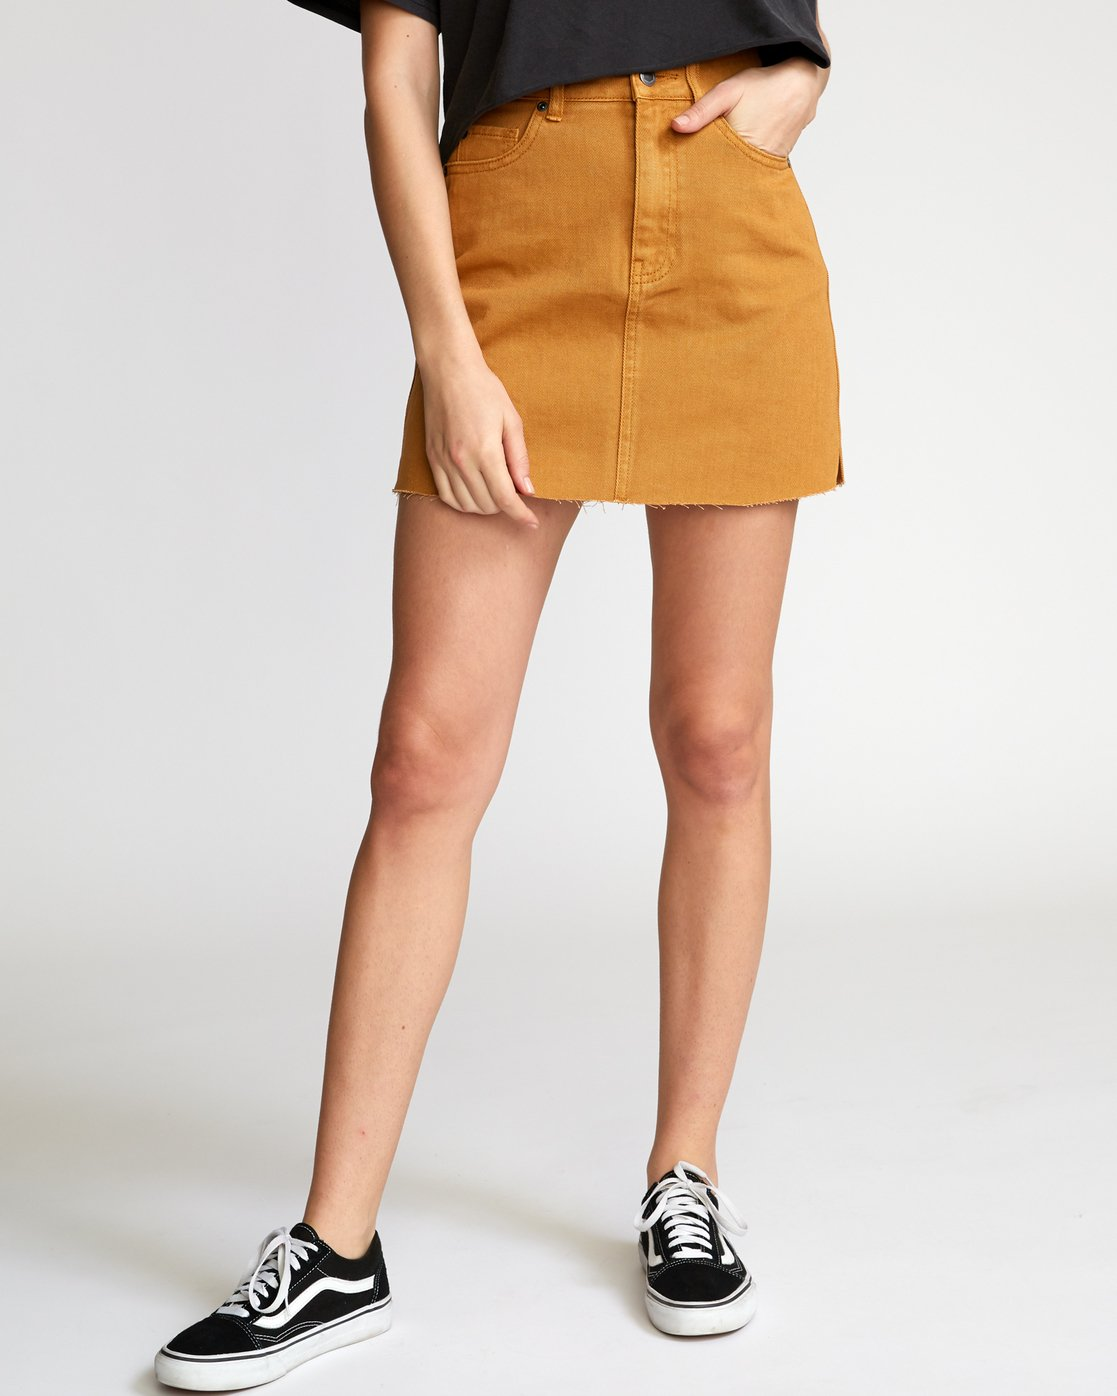 0 Rowdy Denim Mini Skirt Orange WK01VRRM RVCA